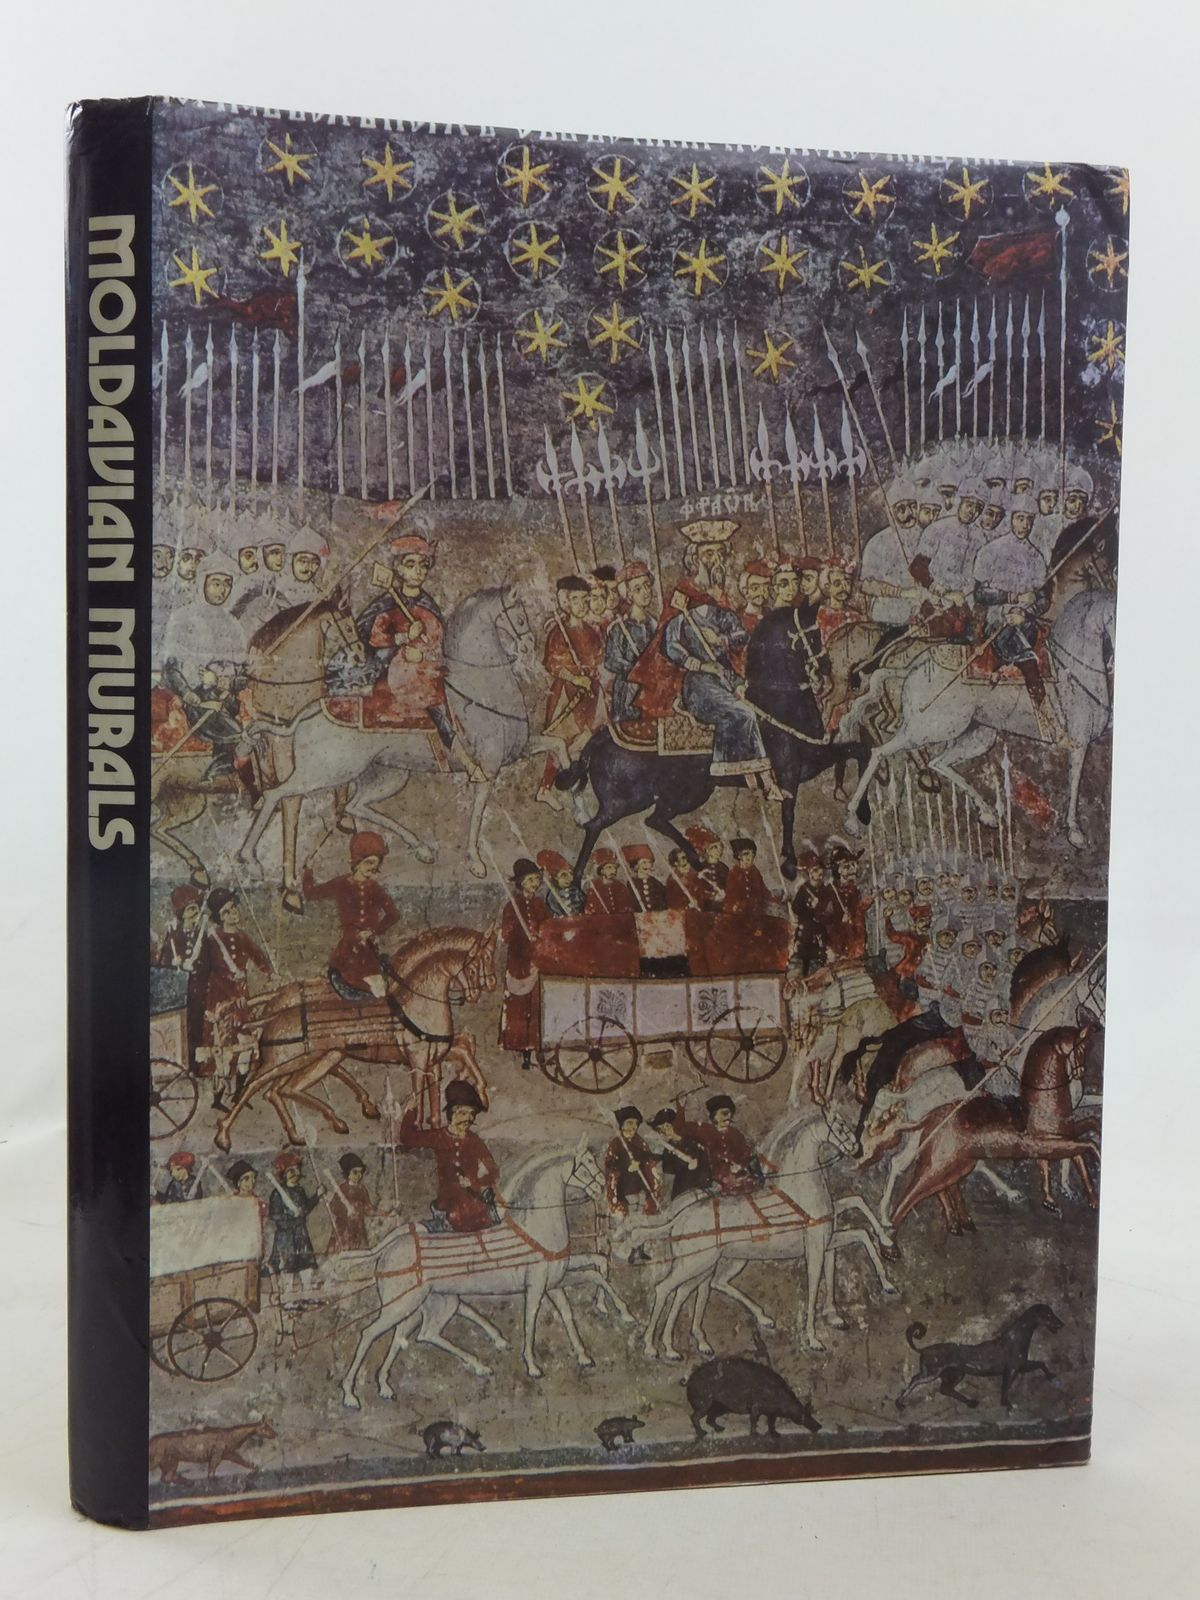 Photo of MOLDAVIAN MURALS FROM THE 15TH TO THE 16TH CENTURY written by Dragut, Vasile published by Meridiane Publishing House (STOCK CODE: 1606726)  for sale by Stella & Rose's Books